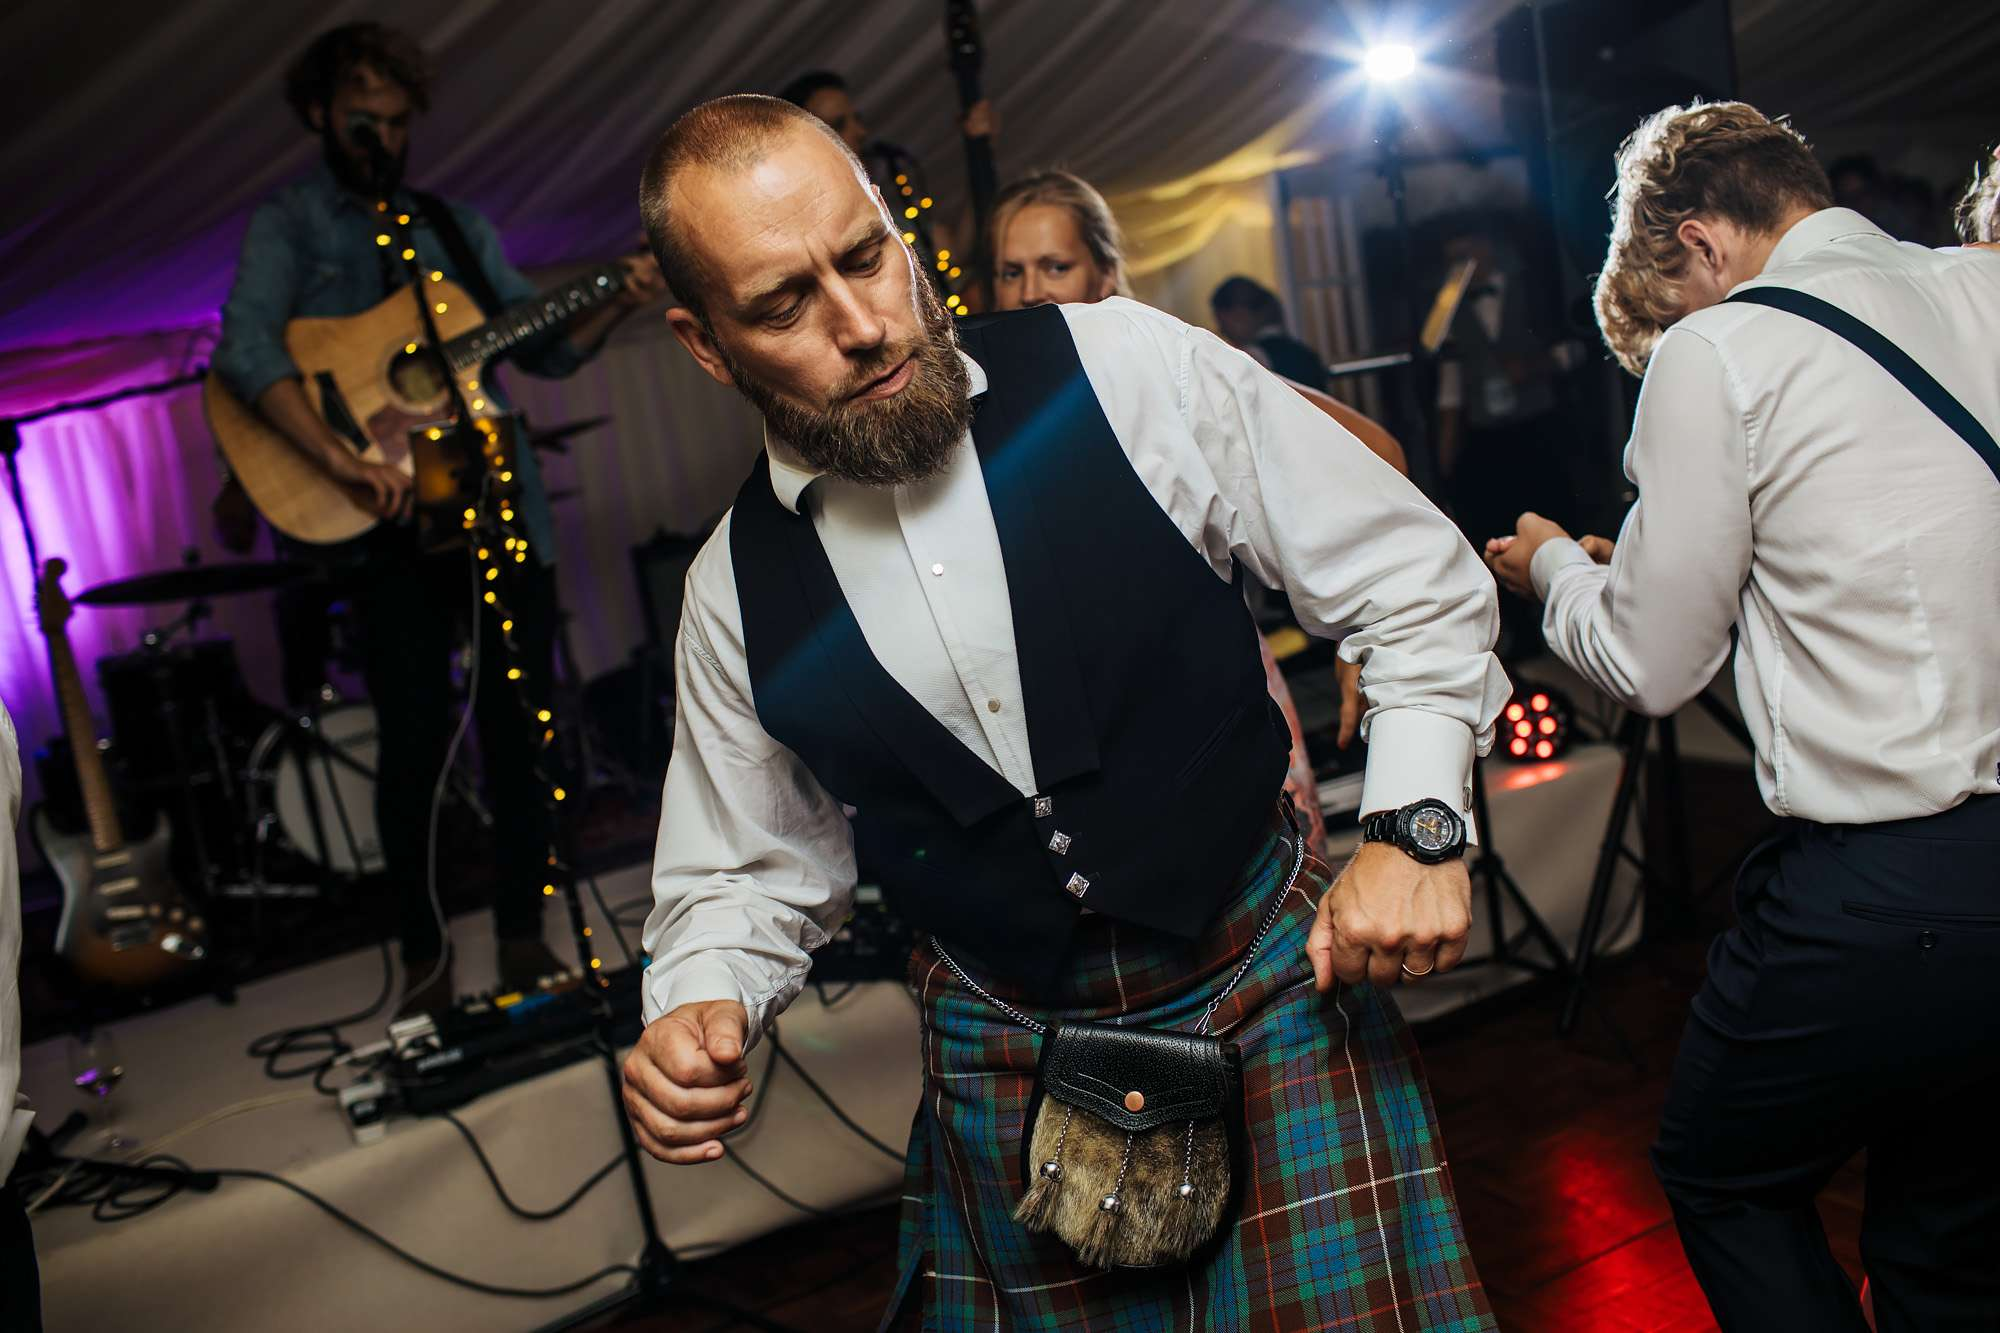 Guest in kilt dancing at a Yorkshire wedding